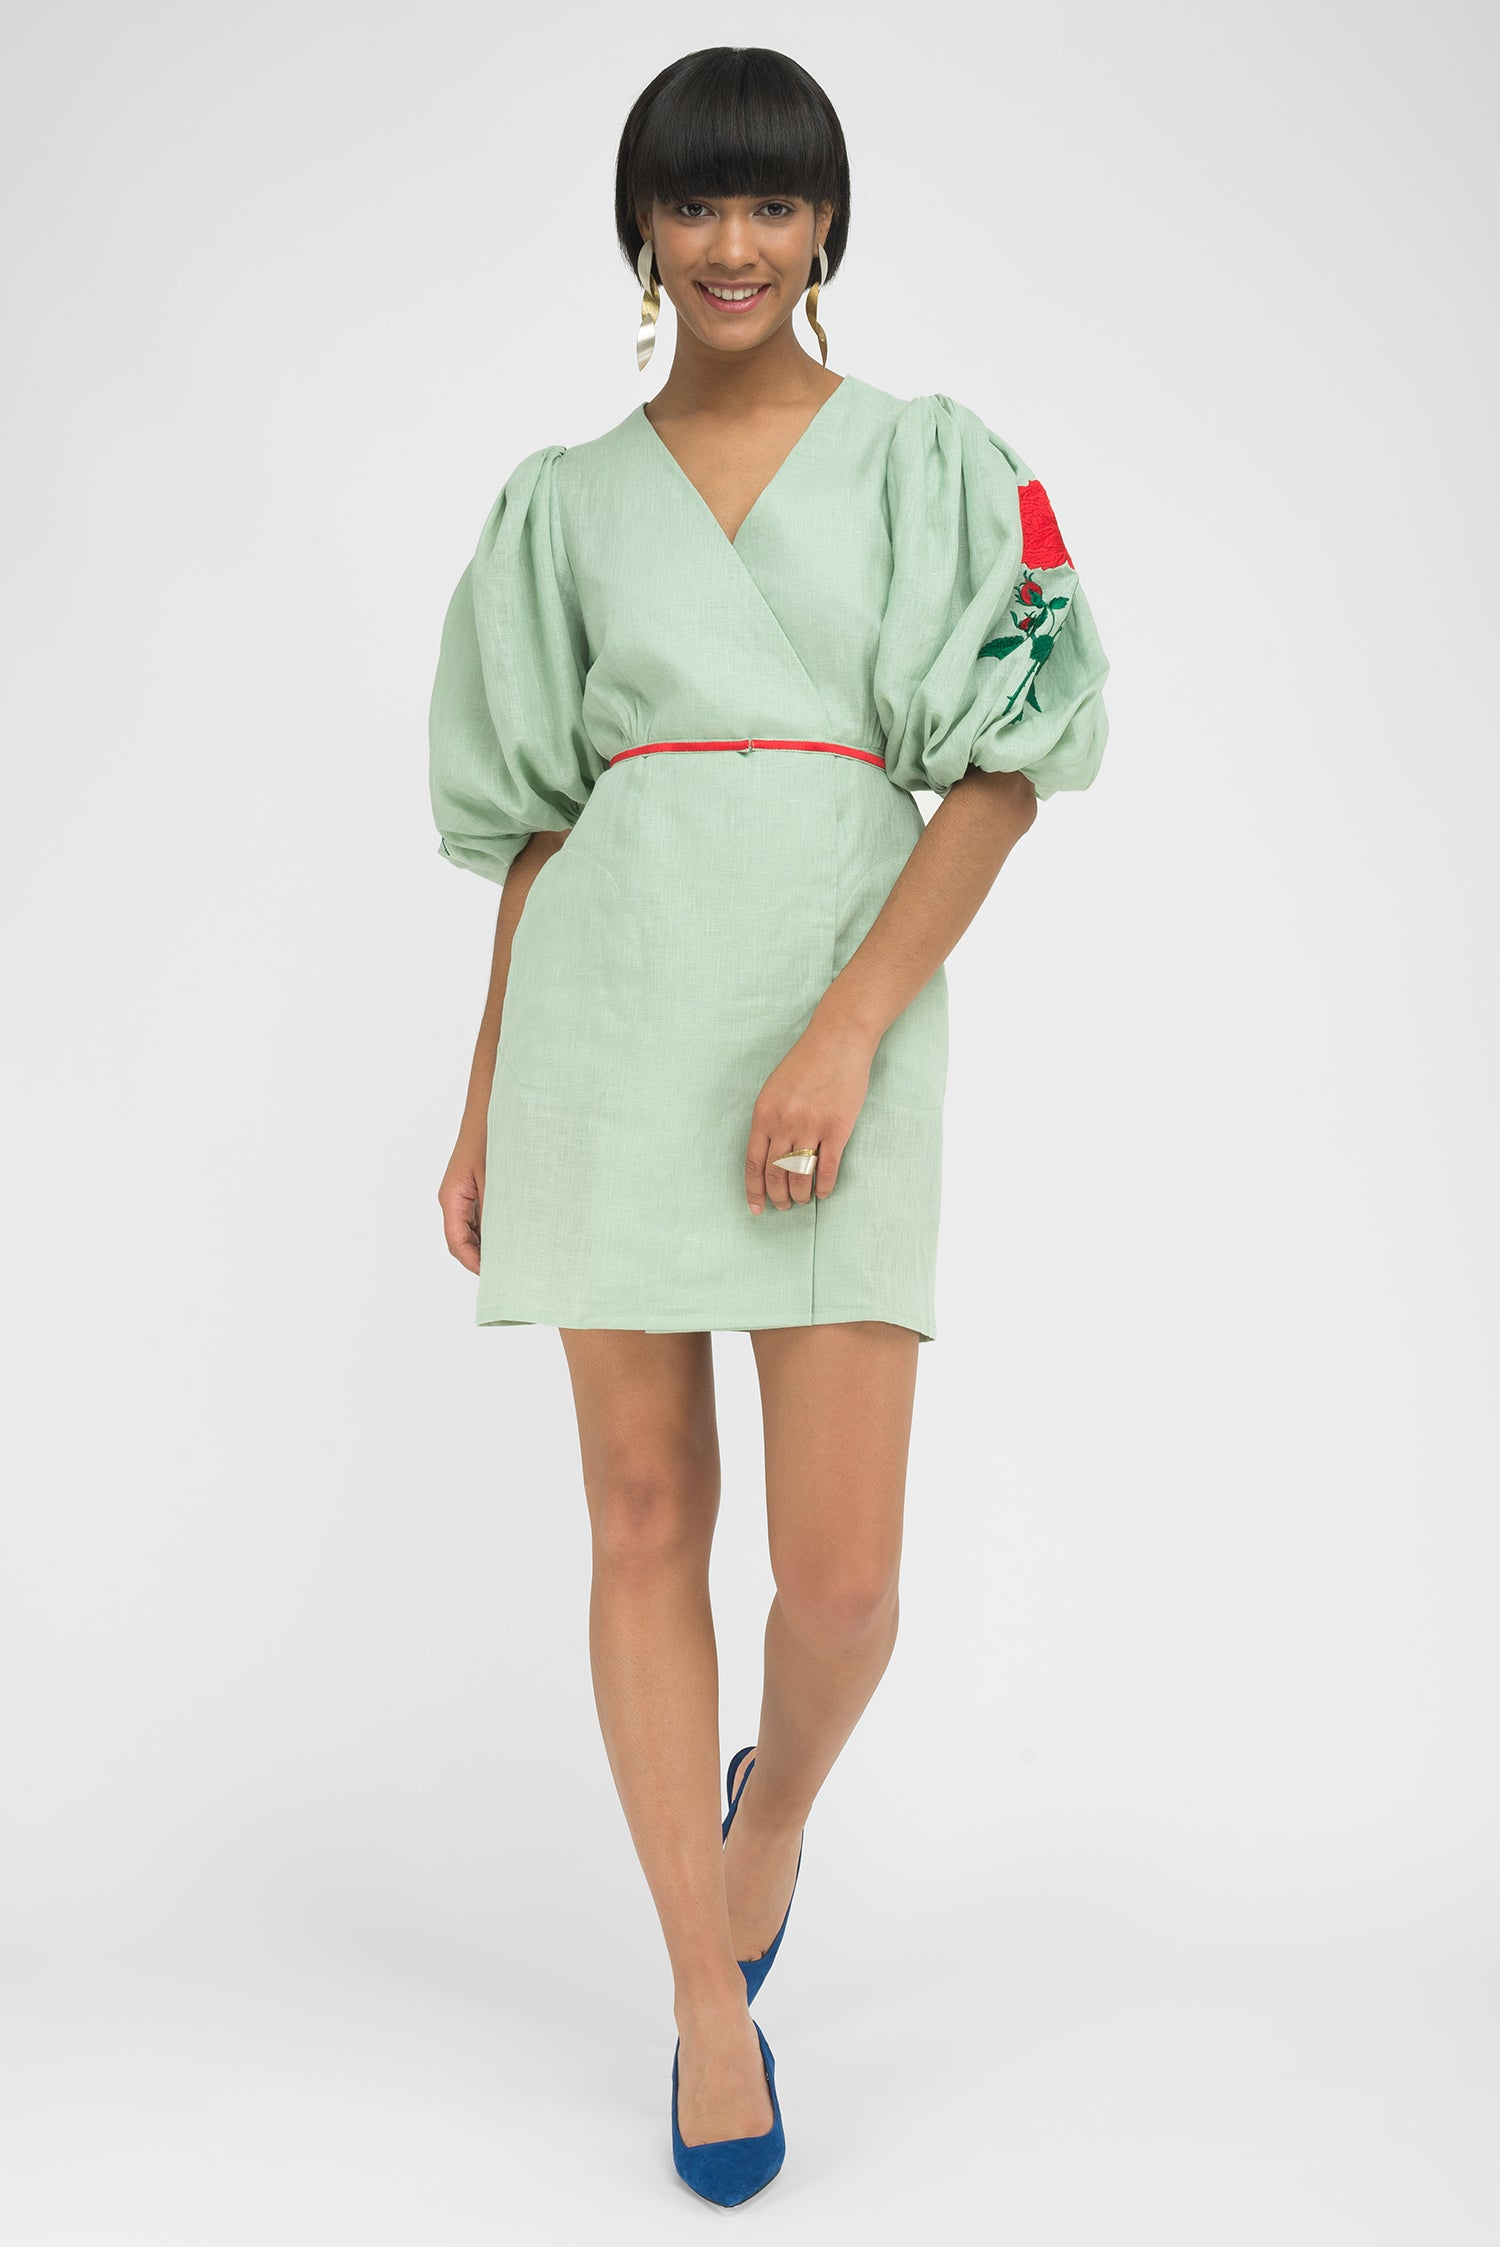 FANM MON NIF Green Mint Linen Green Embroidery Mini Dress